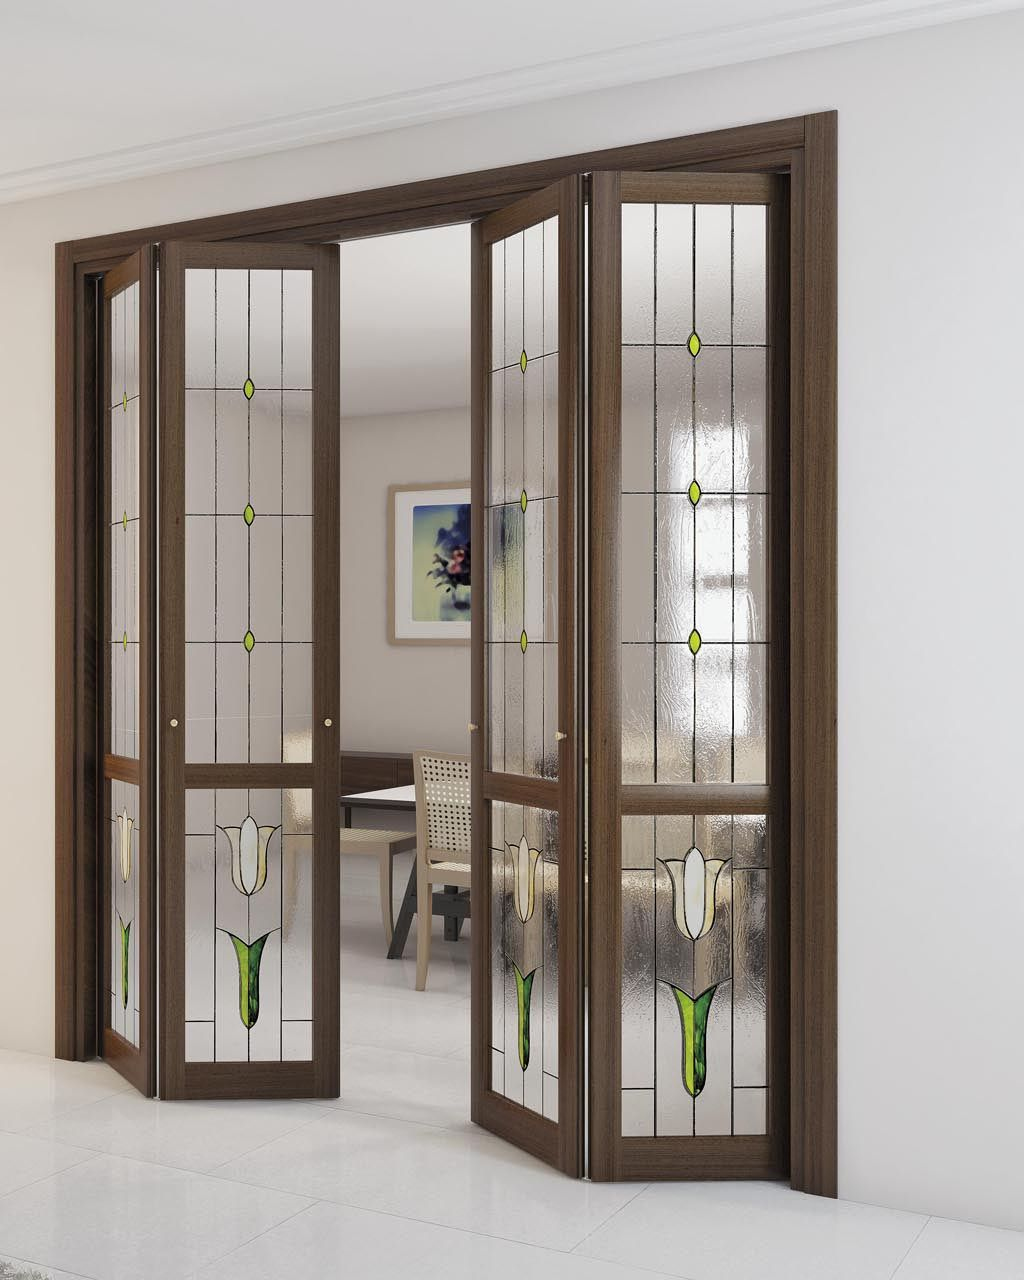 Wooden Folding Doors : Wooden folding doors interior